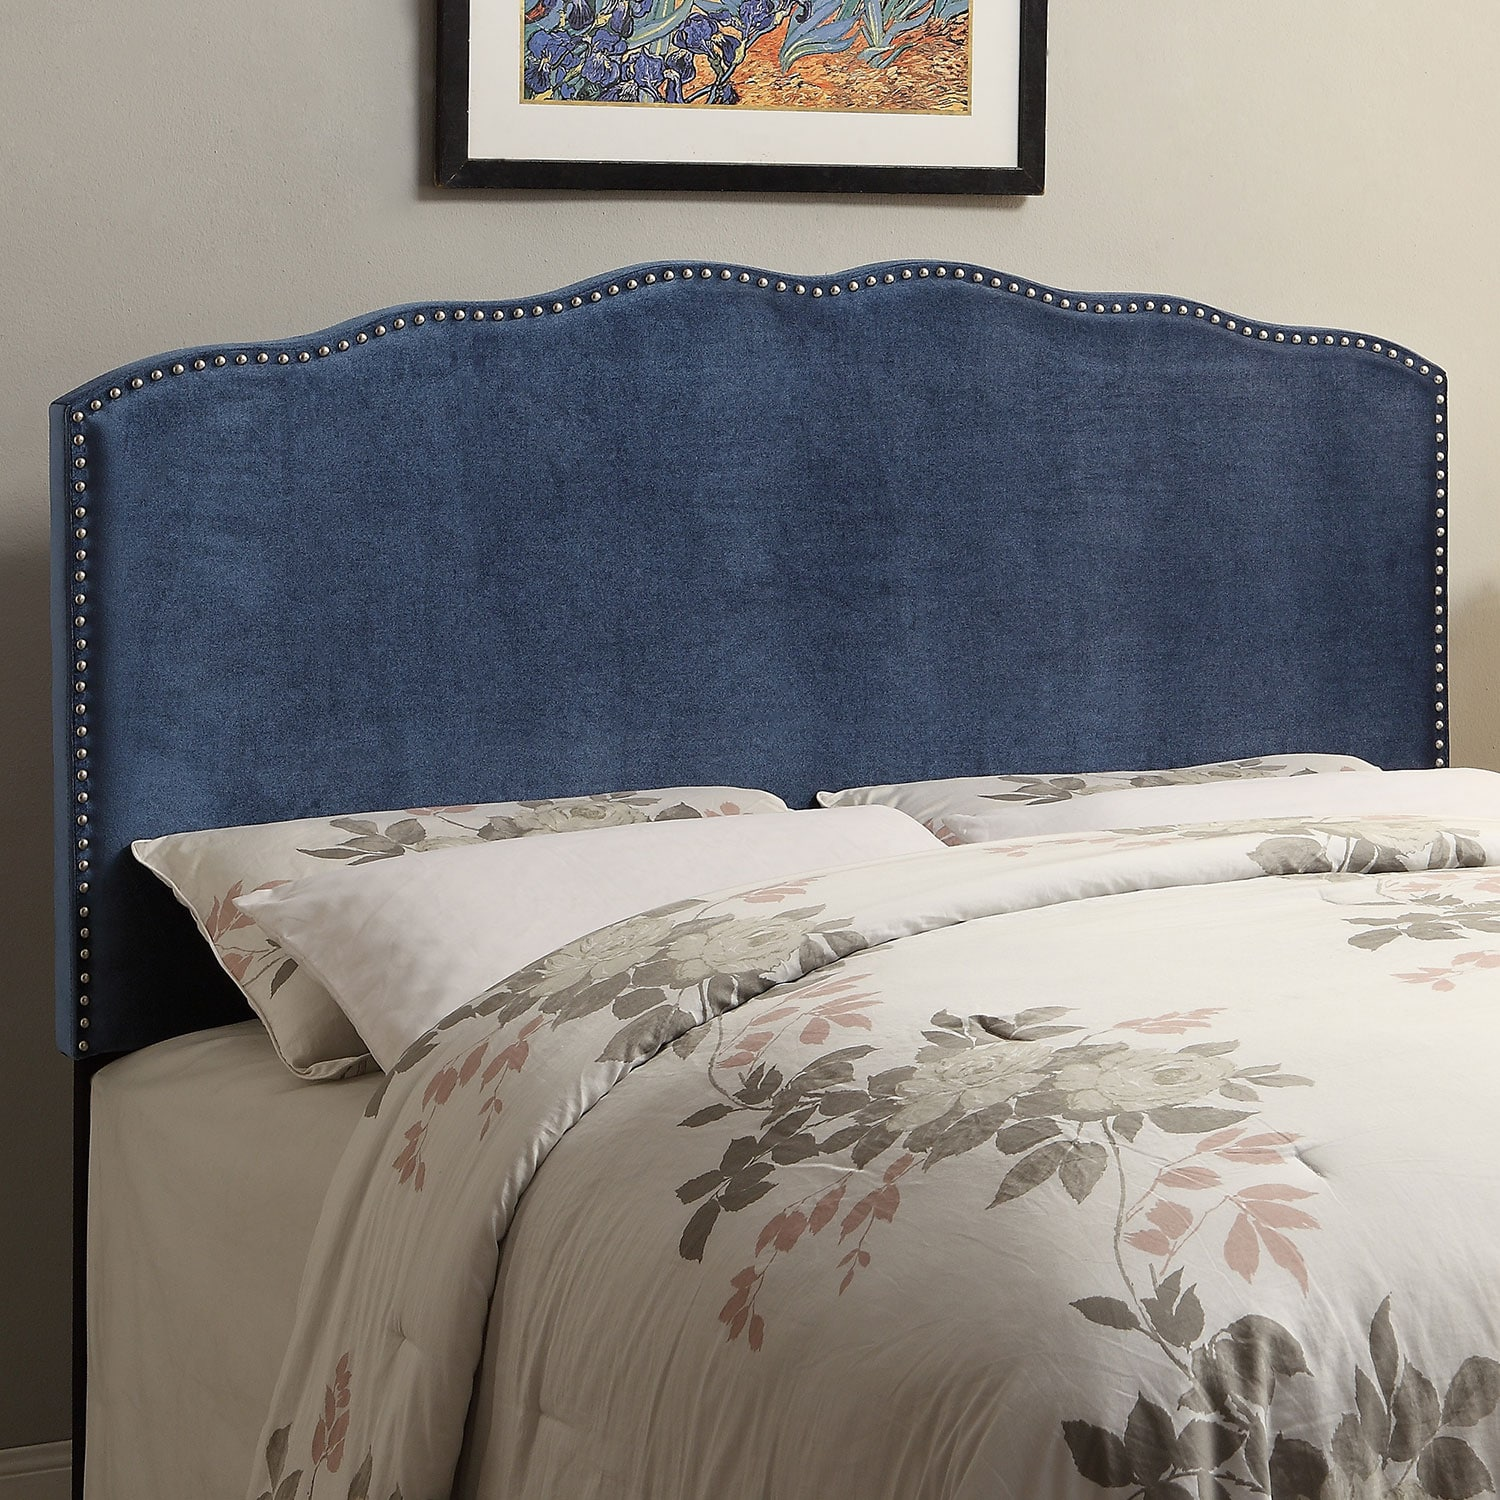 Bedroom Furniture - Layla King Headboard - Indigo